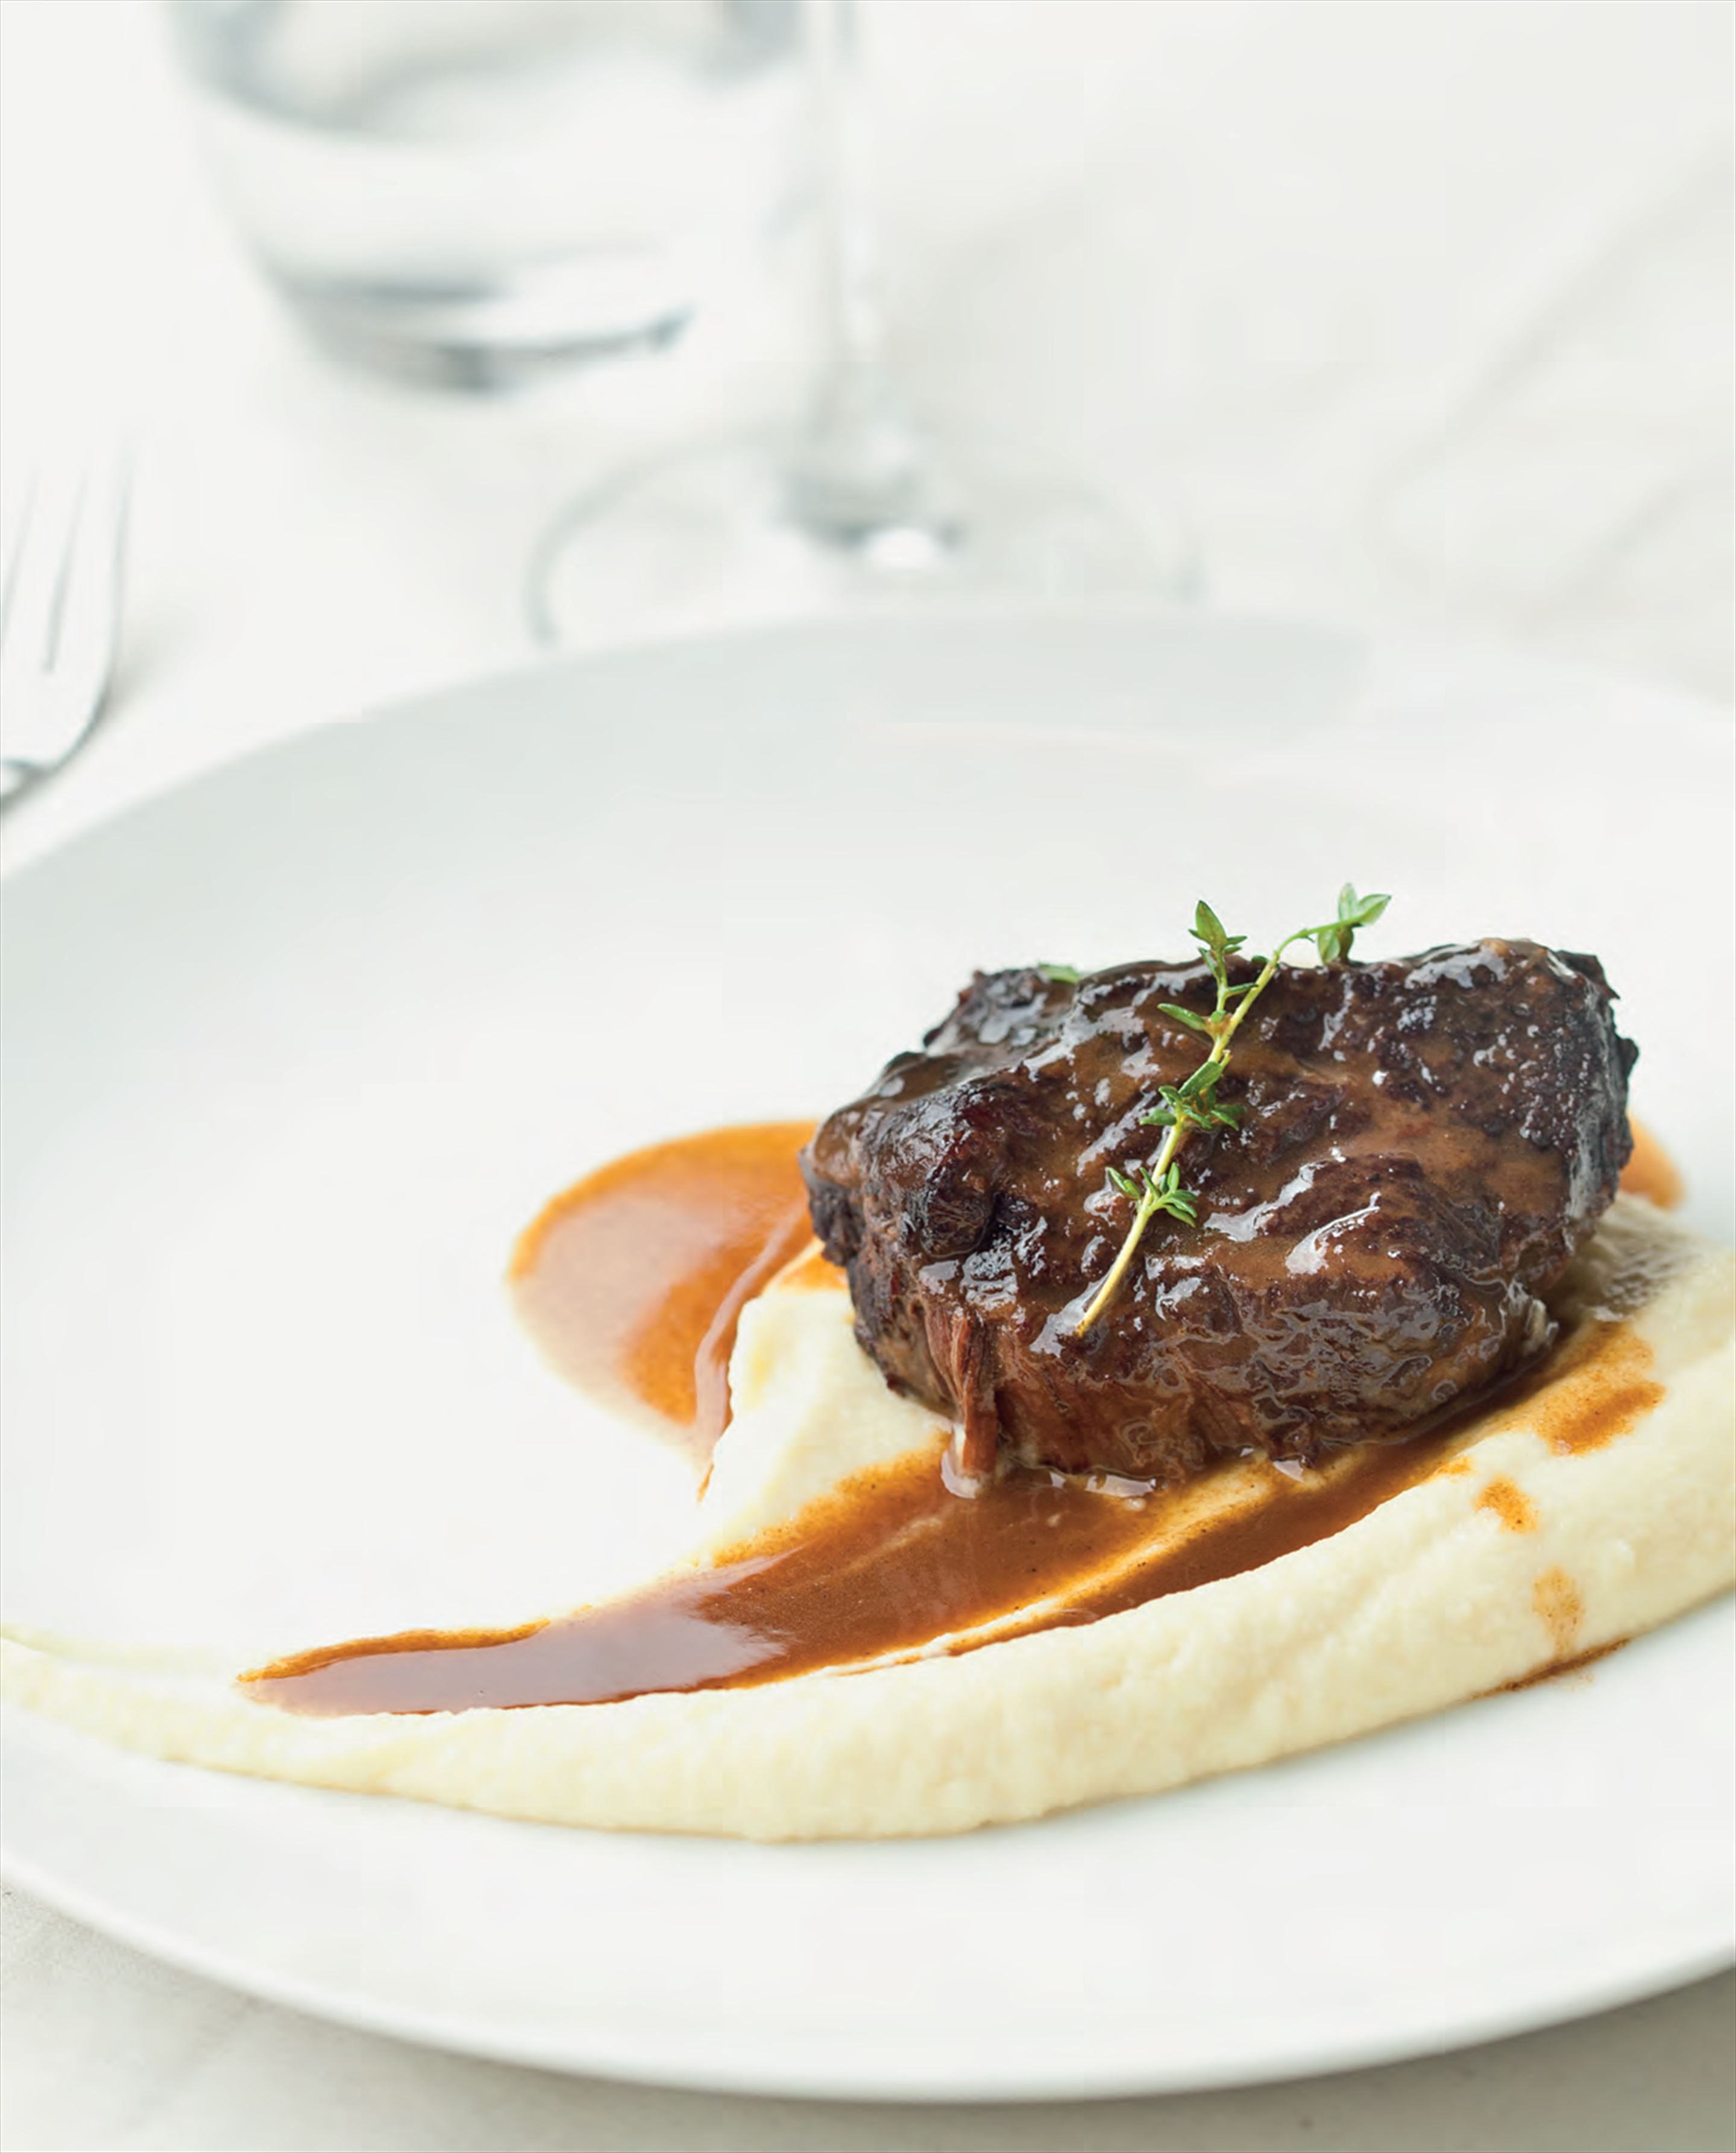 Beef cheeks bourguignon with cauliflower and leek puree